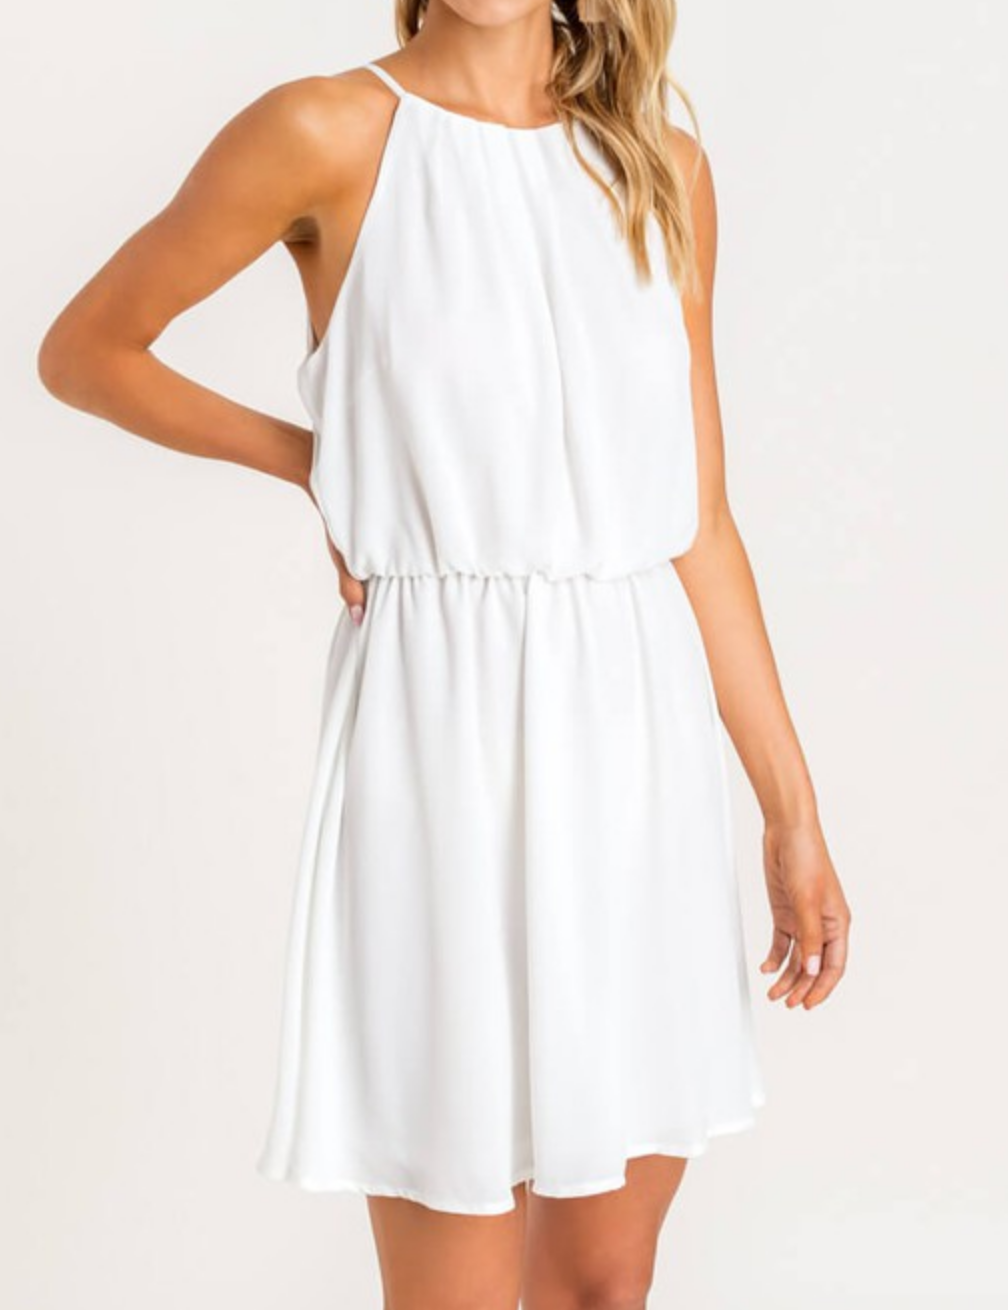 Lush Sheer Joy Pleated Dress